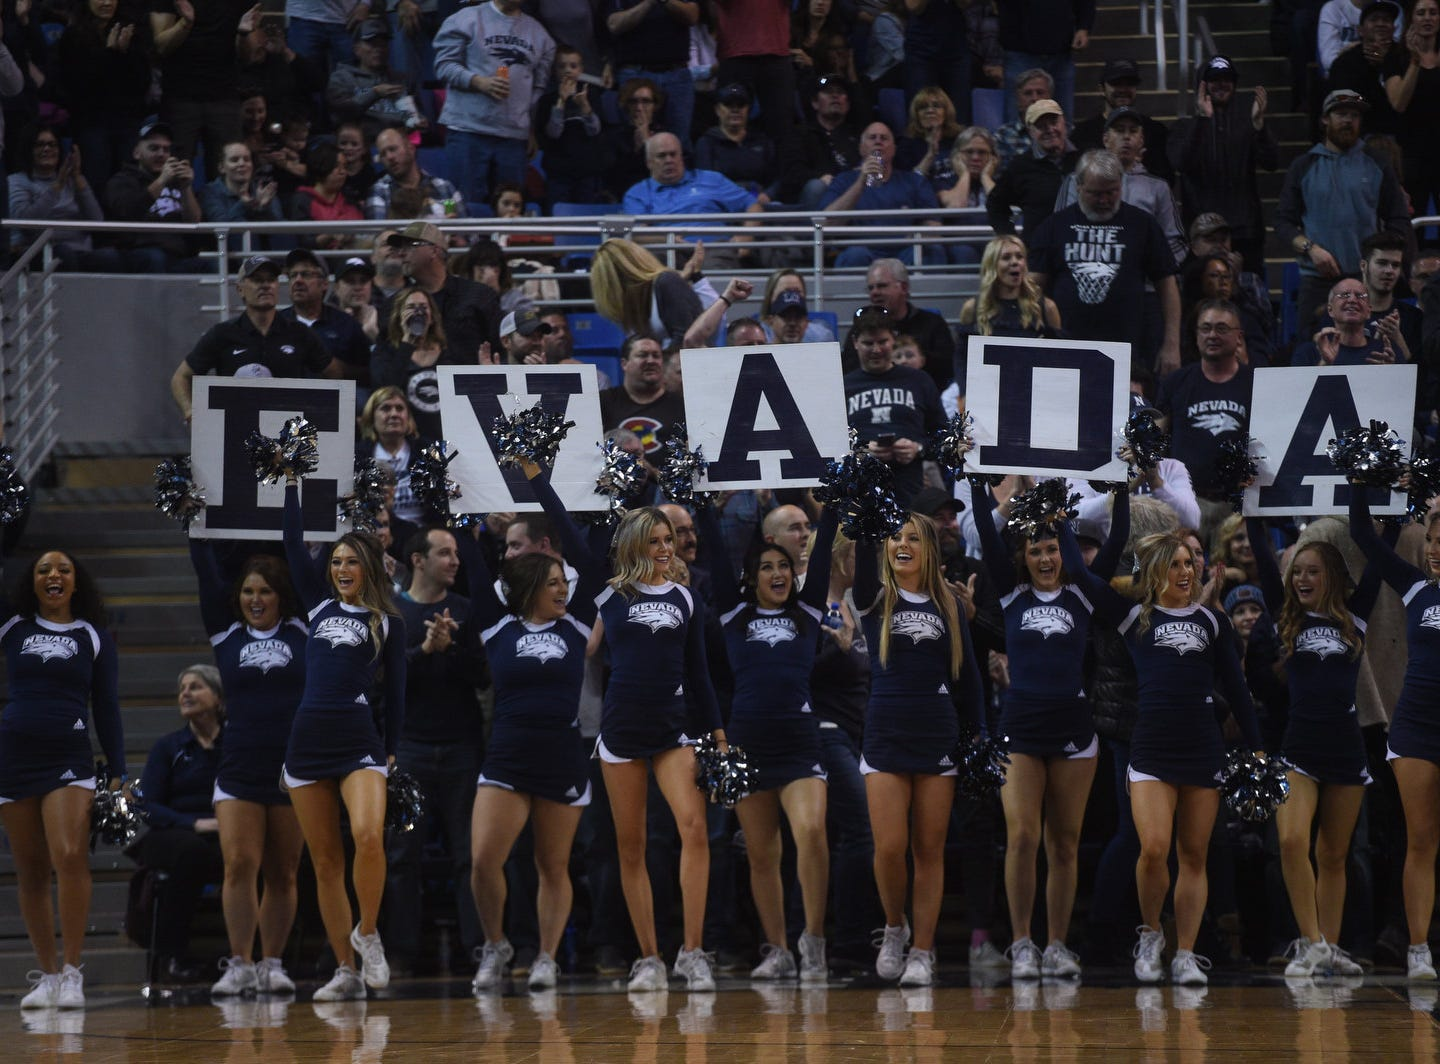 Nevada takes on New Mexico at Lawlor Events Center in Reno on Feb. 9, 2019.